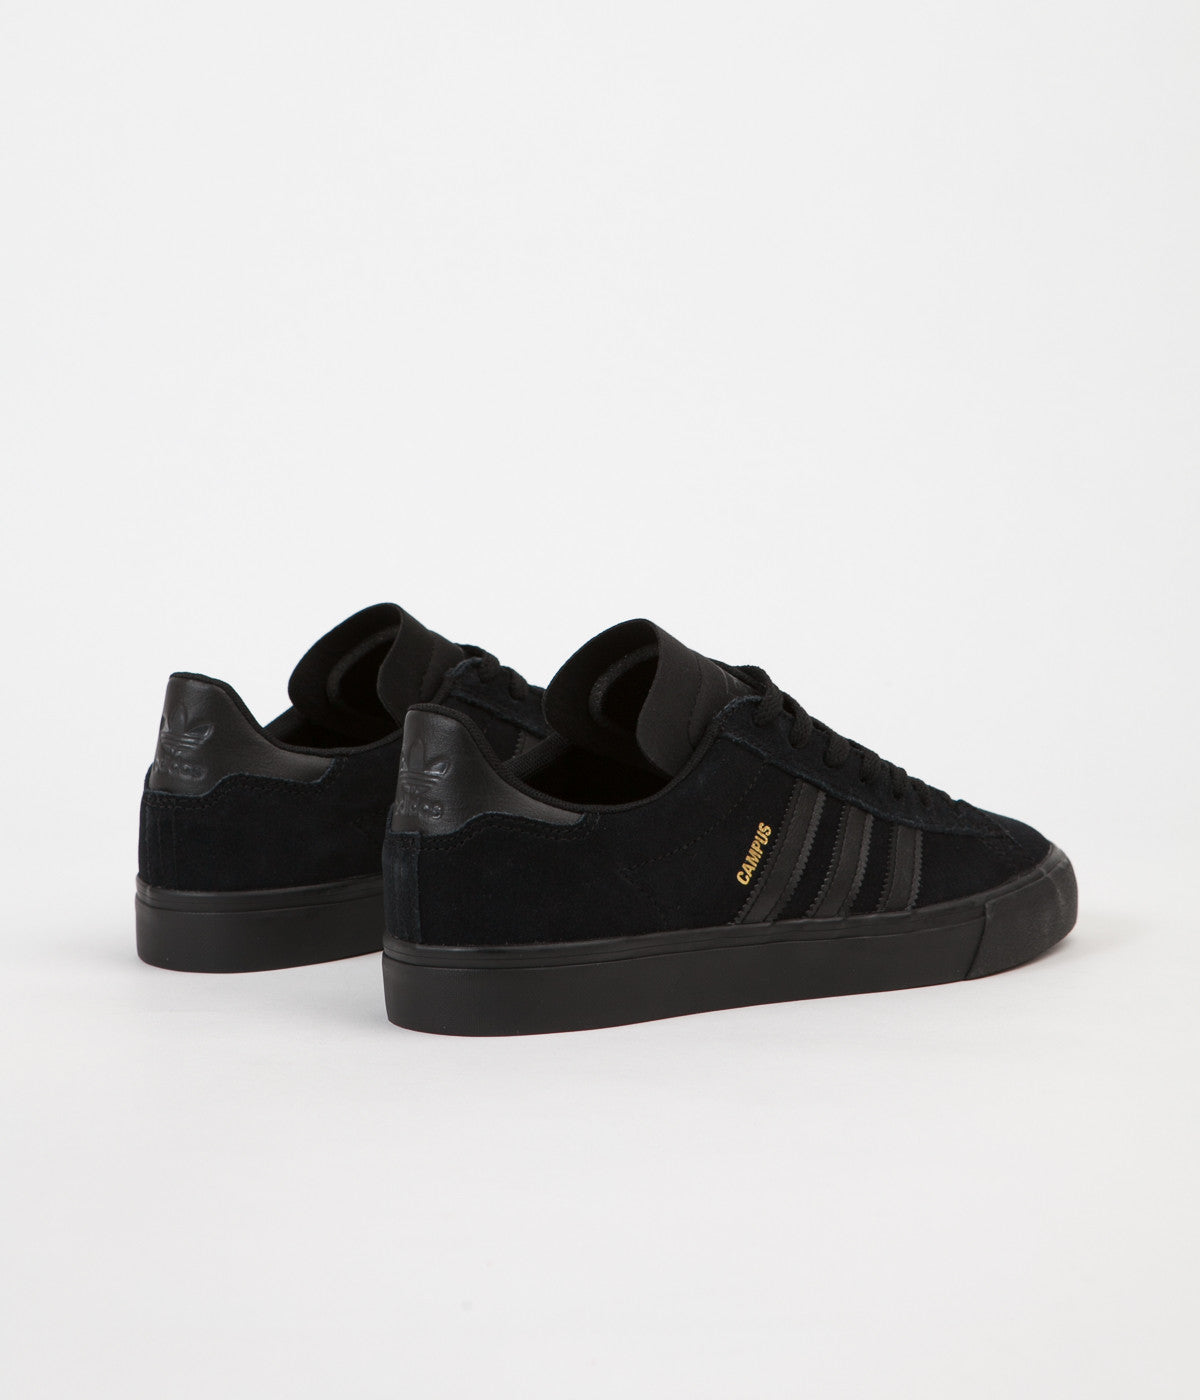 5c254505e7bfbe ... Adidas Campus Vulc II Shoes - Core Black   Core Black   Core Black ...